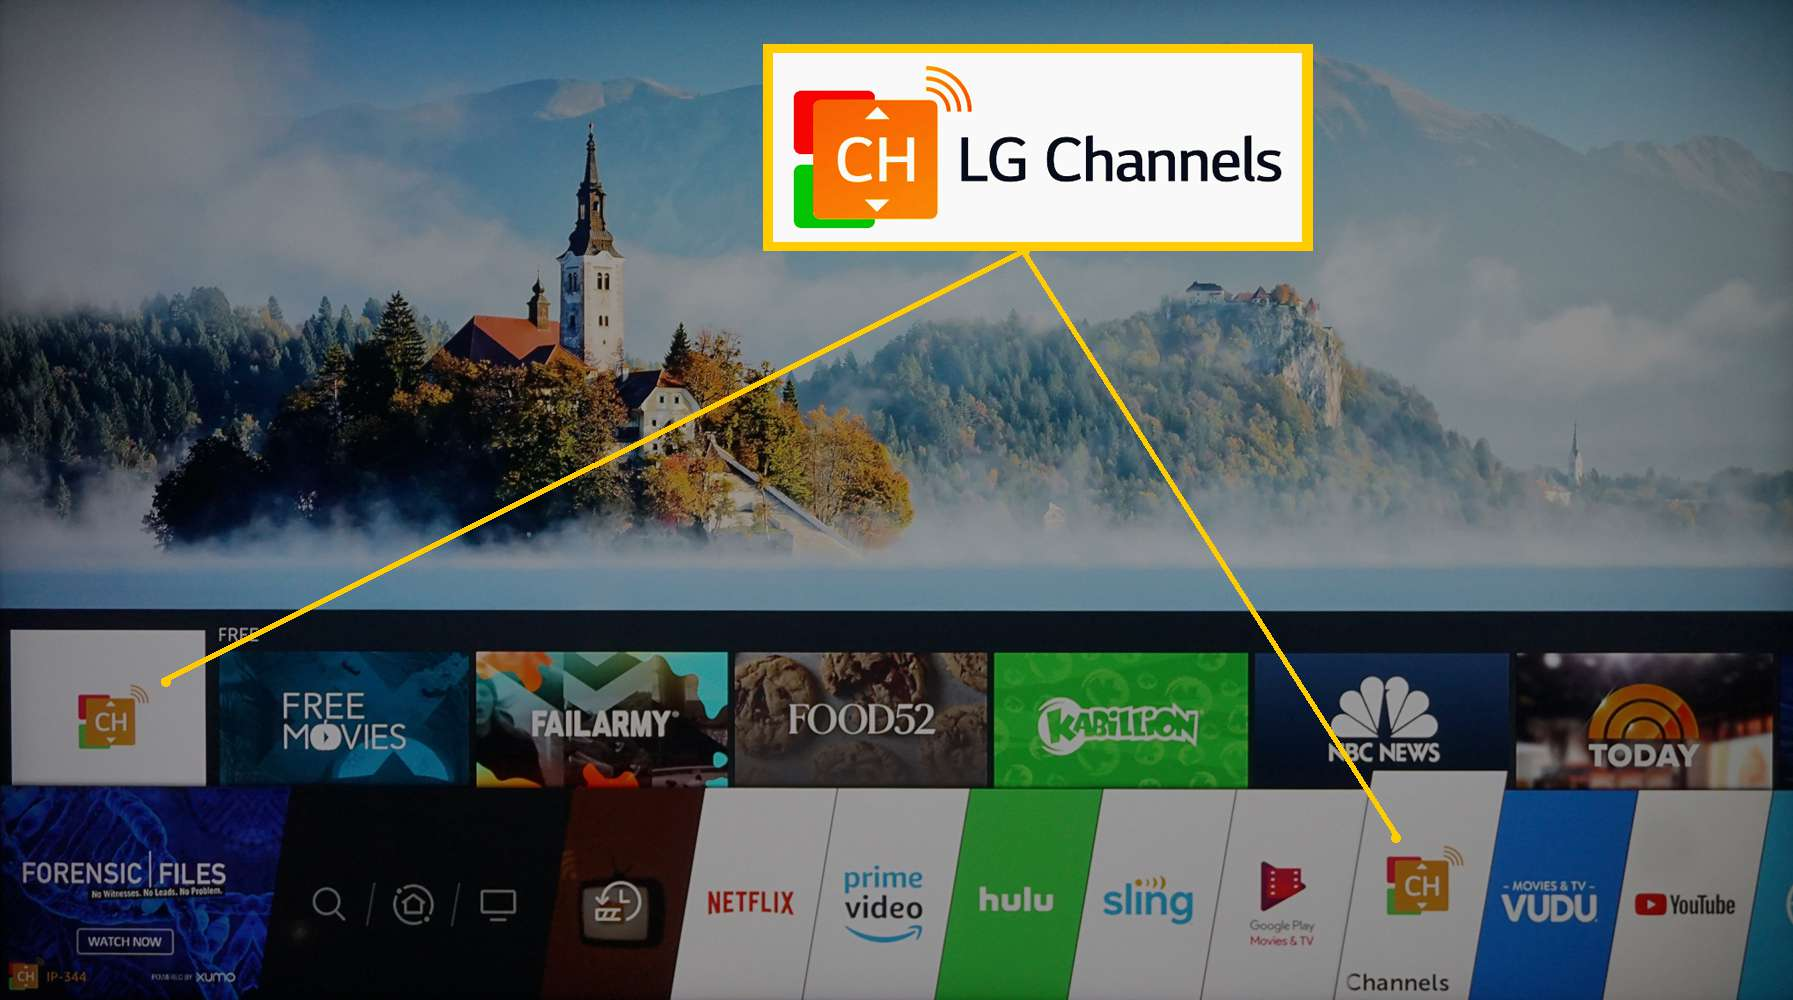 LG Channels Selection on Home Menu